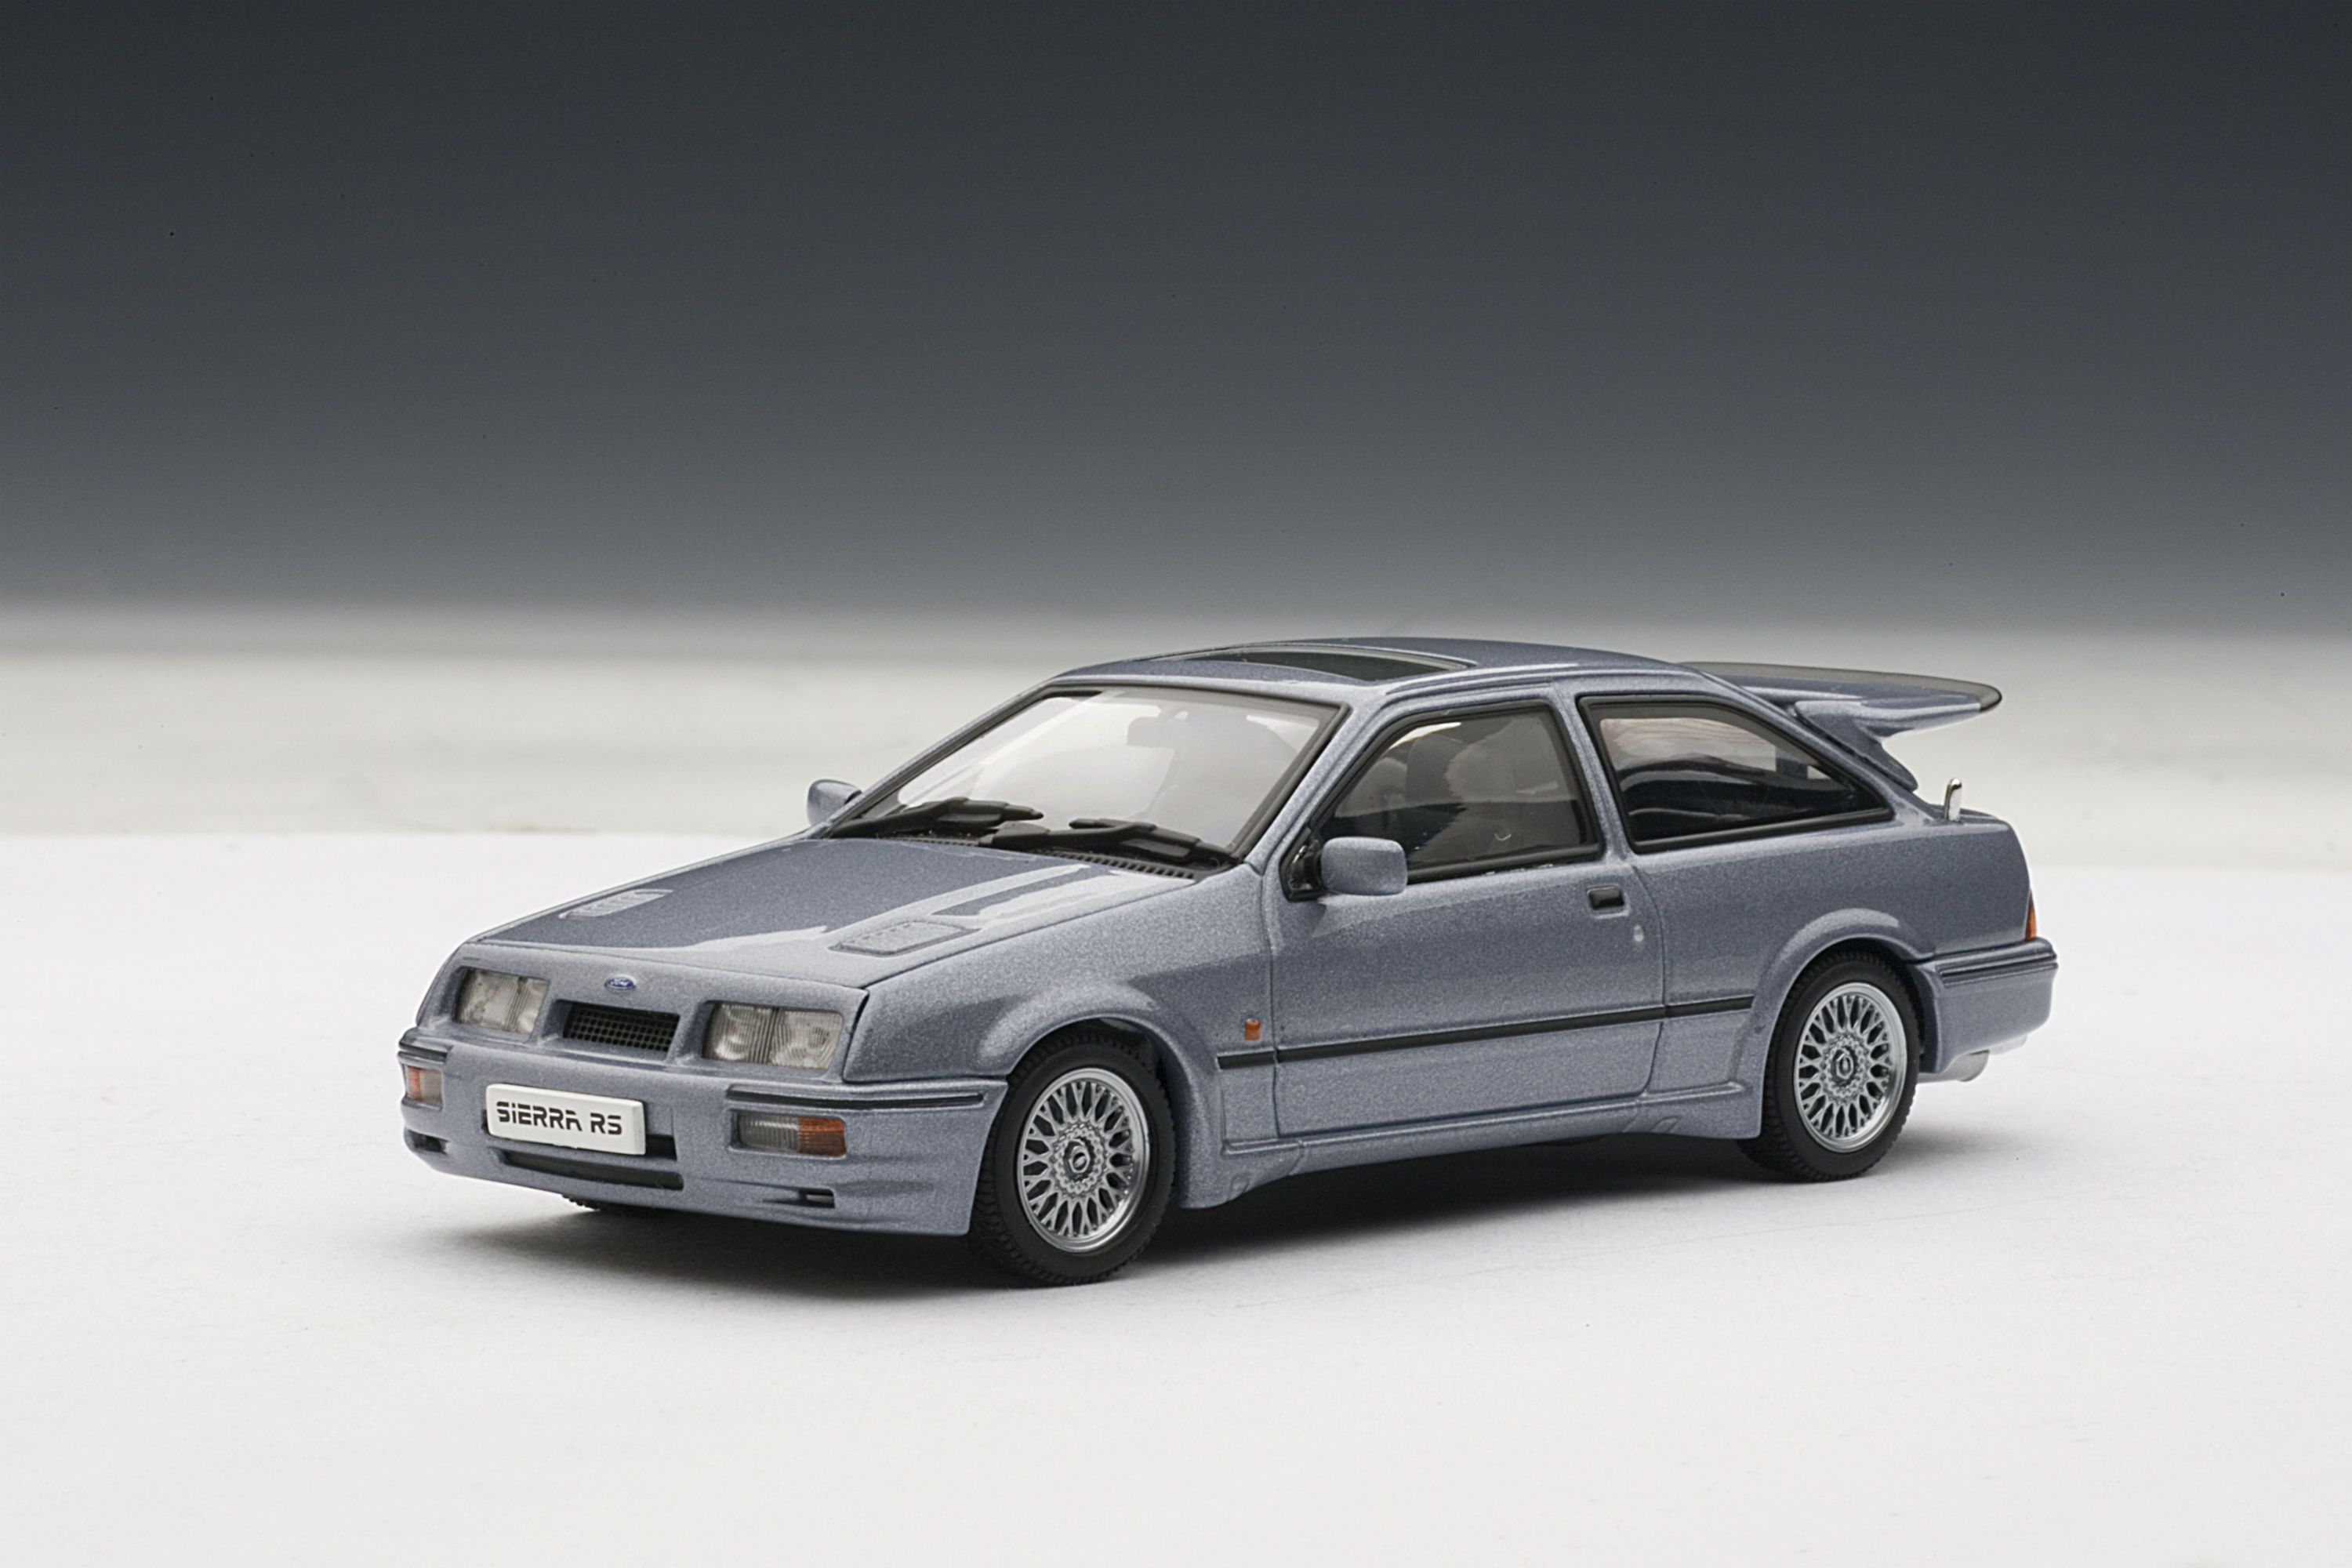 Ford Sierra Rs500 Cosworth 1 43 Scale Diecast Model Car By